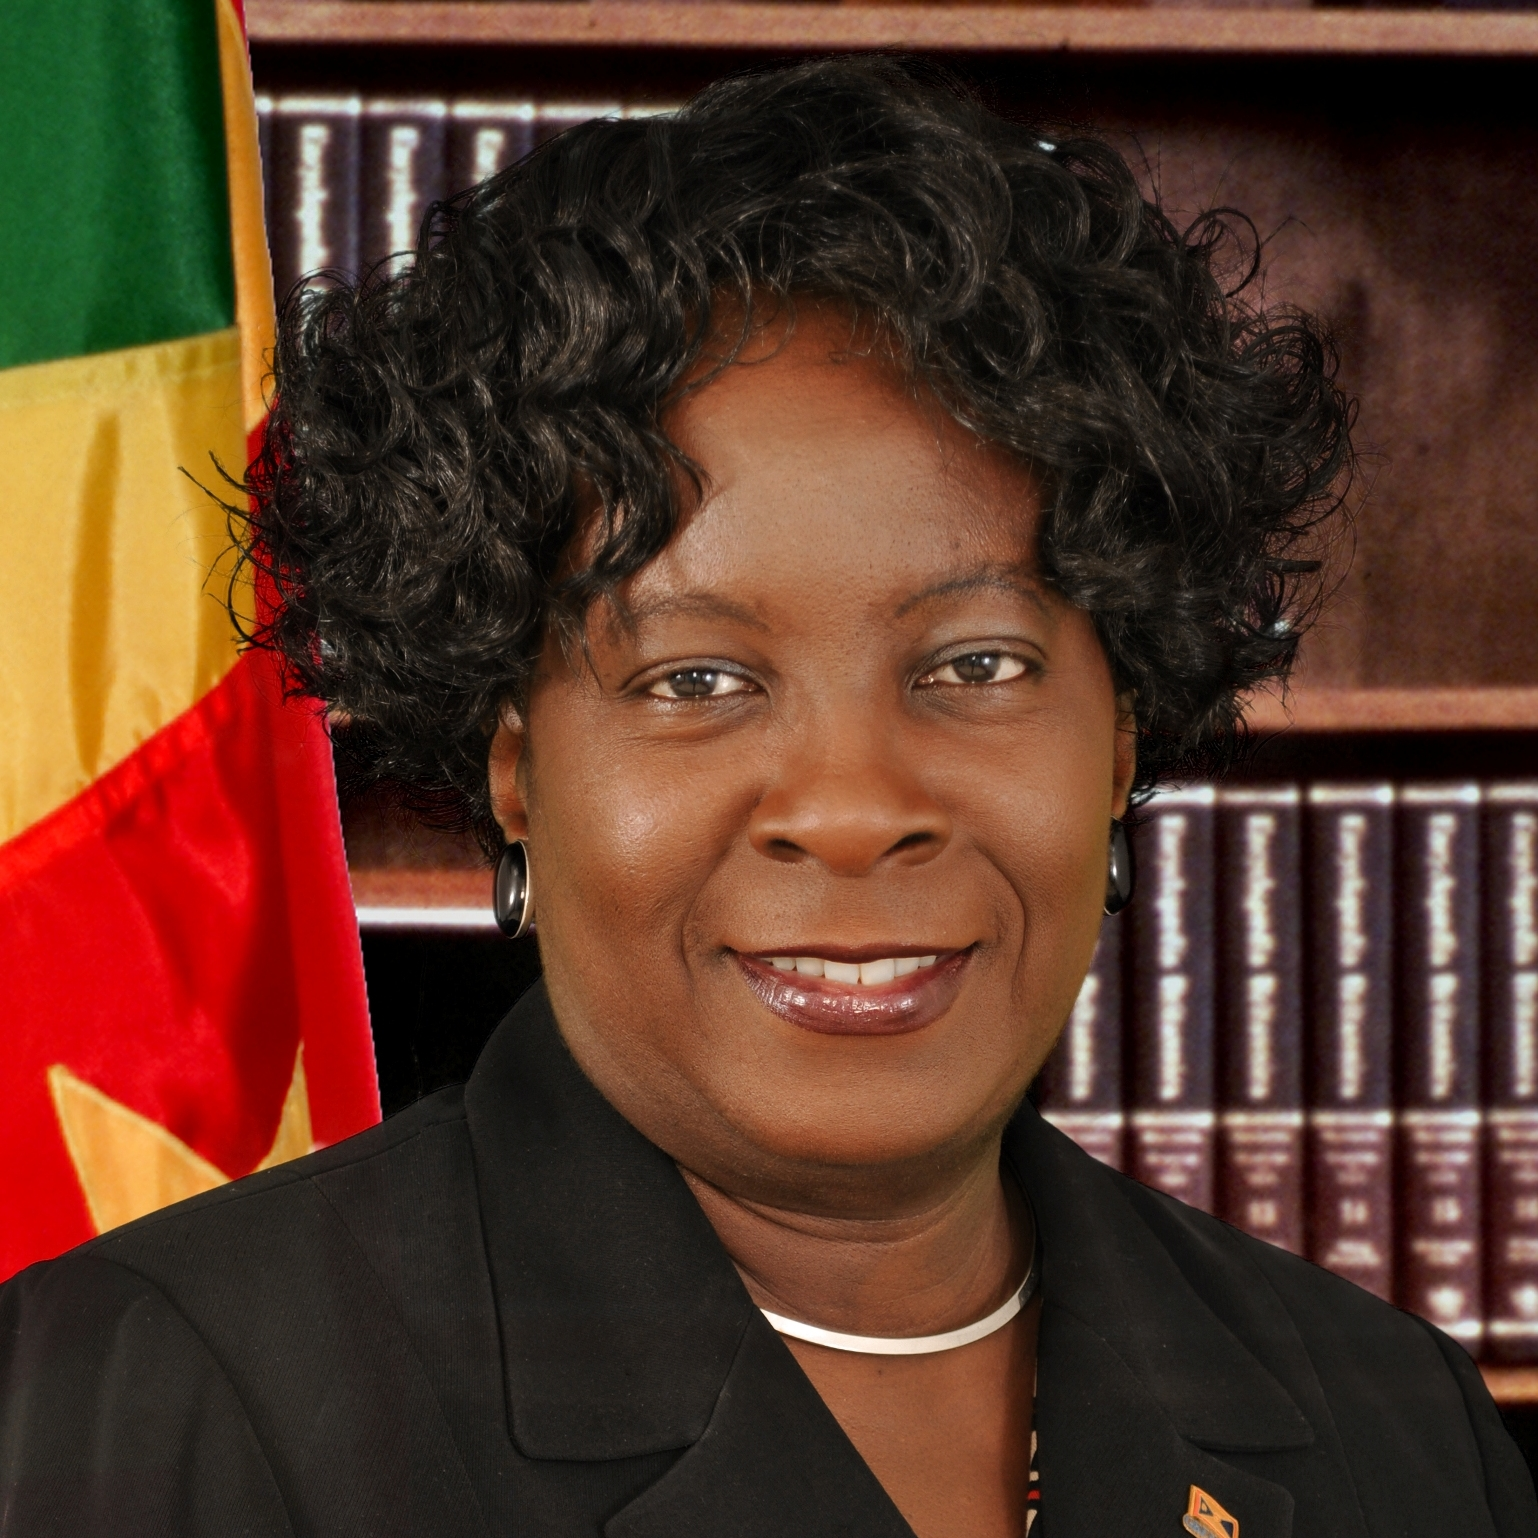 HE RUTH ELIZABETH ROUSE - GRENADA HIGH COMMISSIONHONOUREE2013High Commissioner Ruth Elizabeth Rouse was nominated for her work on raising women's issues within the diplomatic service. As the founder of the Women in Diplomatic Service, Ms Rouse has been active in arranging groups of female diplomats in London to discuss how they could work together more effectively. WDS has taken their message across international borders, generating media coverage and helping other female diplomats form similar groups. The group has also developed scholarships that brings young female diplomats to London to encourage more women to go into diplomacy.